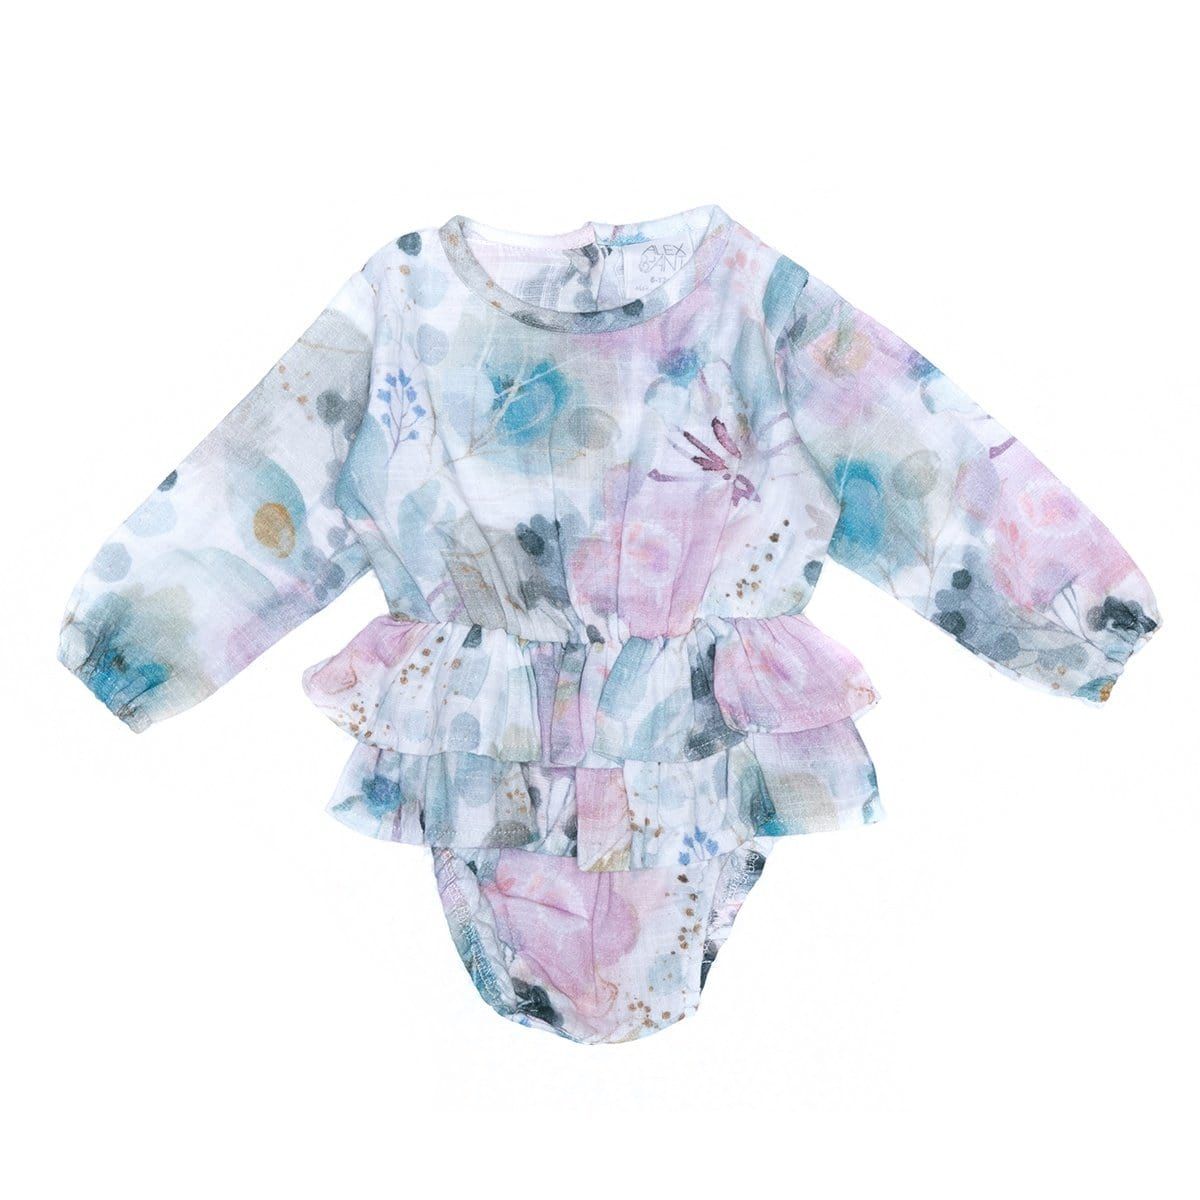 Alex and Ant Gia Playsuit - My Bouquet